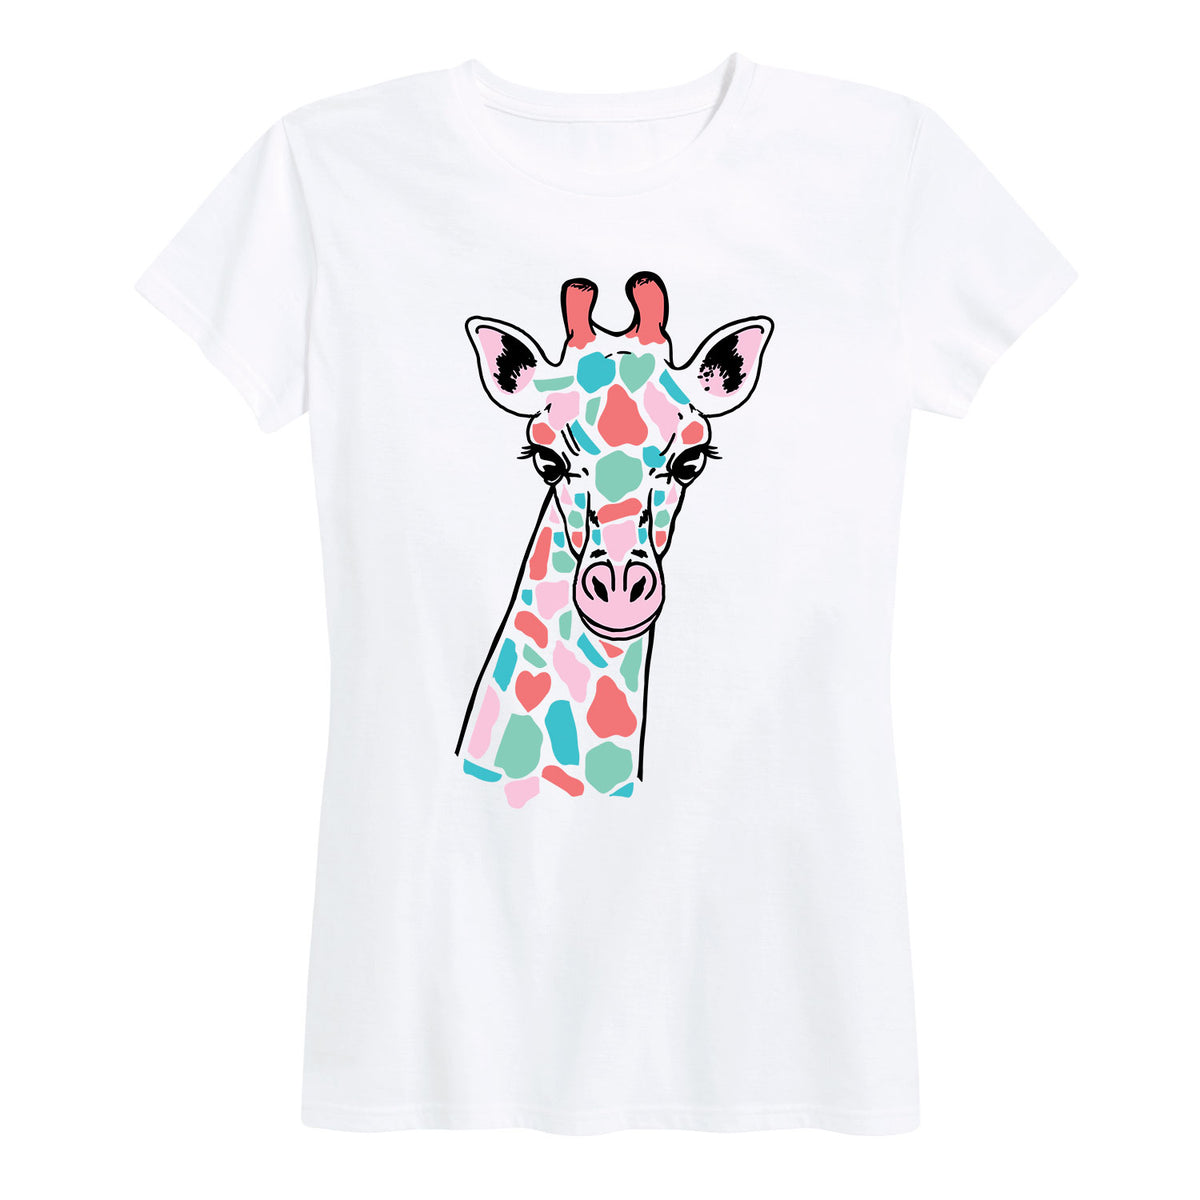 Colorful Giraffe - Women's Short Sleeve T-Shirt